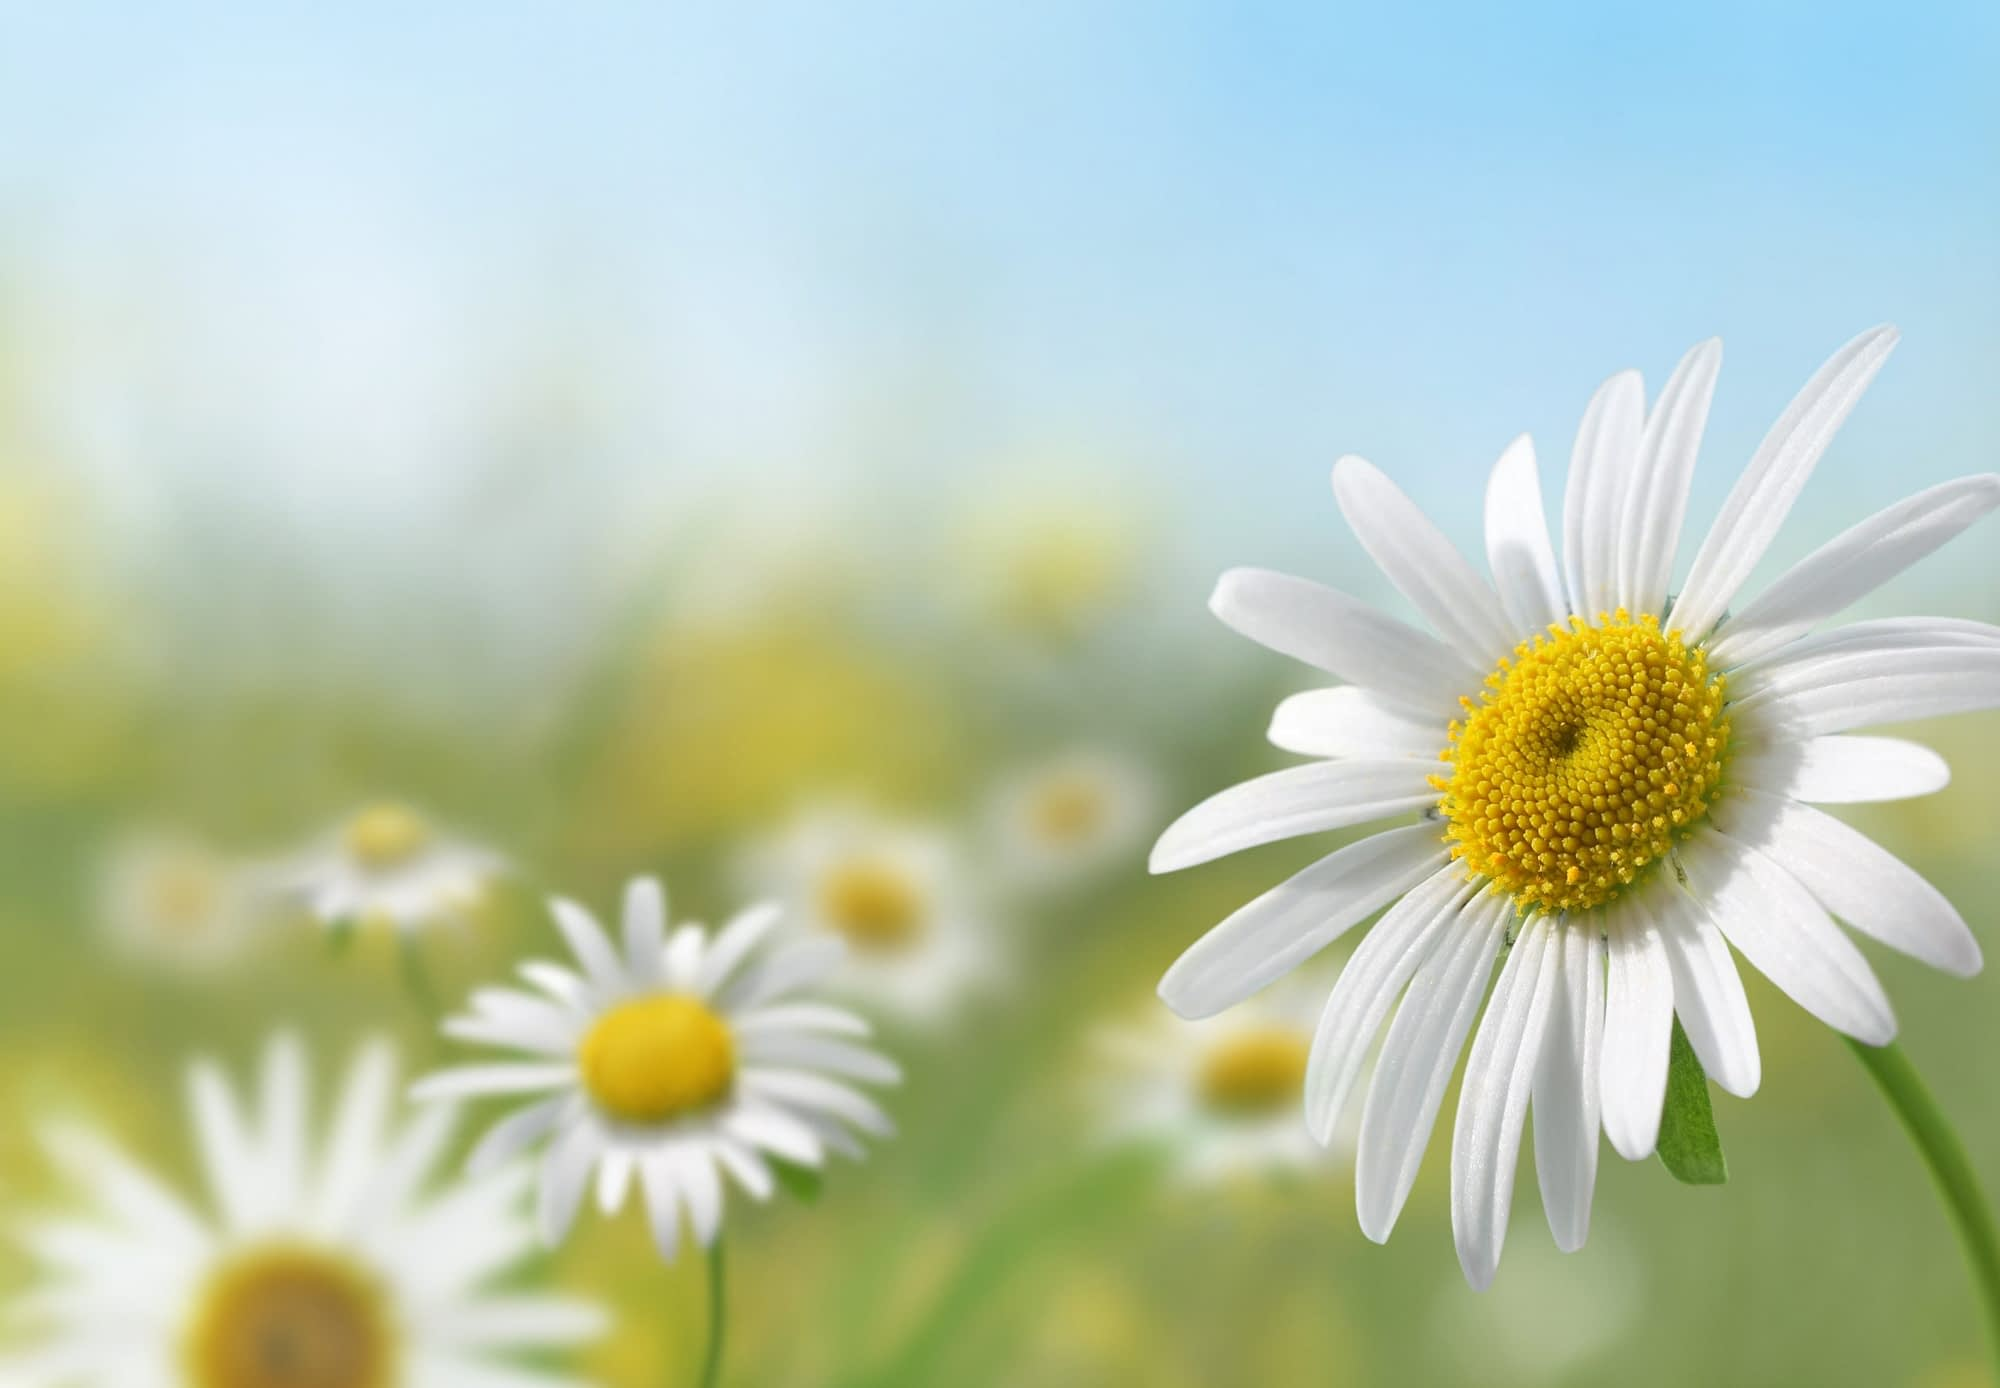 Daisies in a meadow on a sunny day